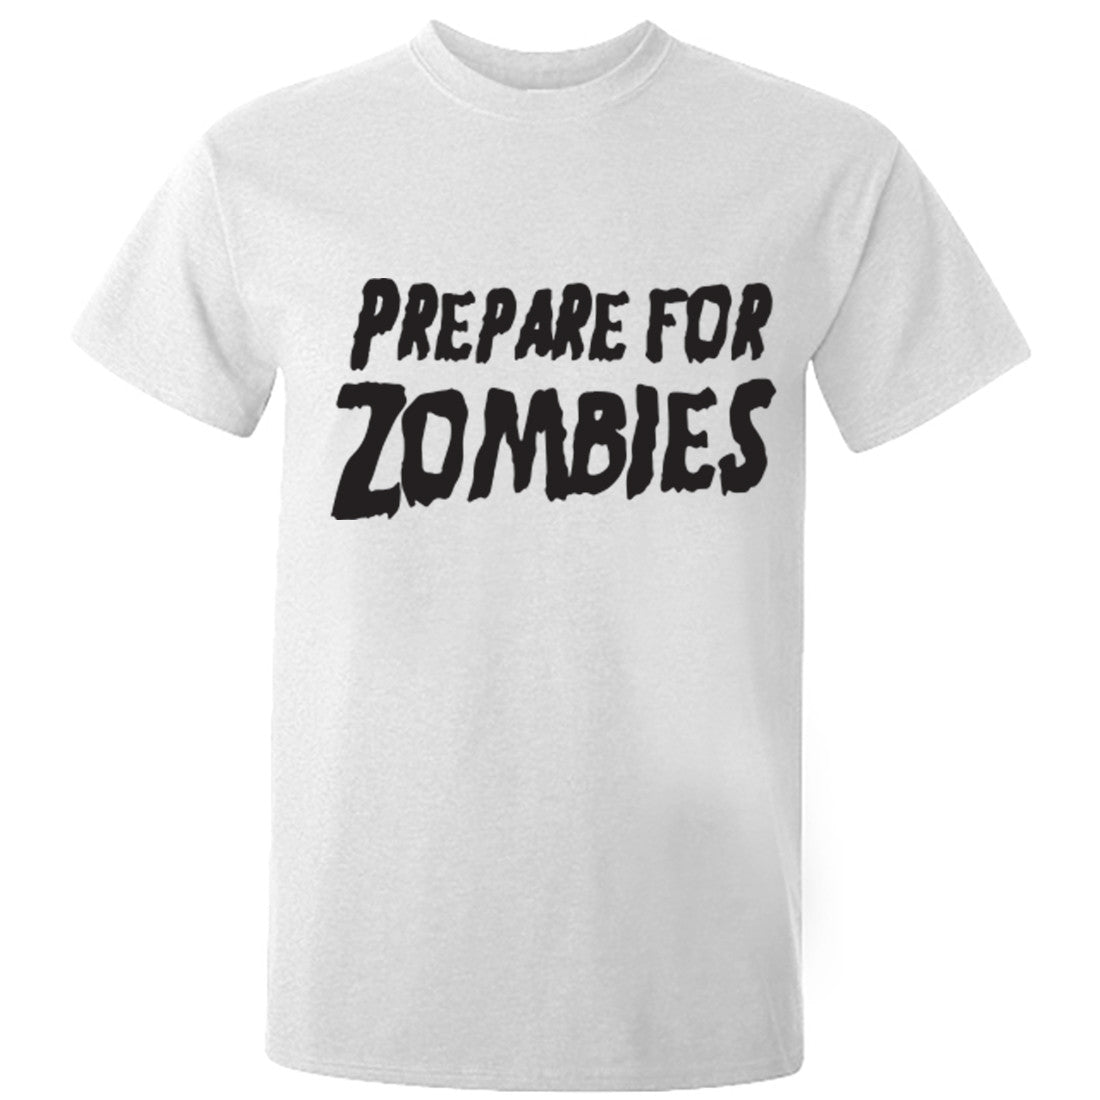 Prepare For Zombies Unisex Fit T-Shirt K0344 - Illustrated Identity Ltd.